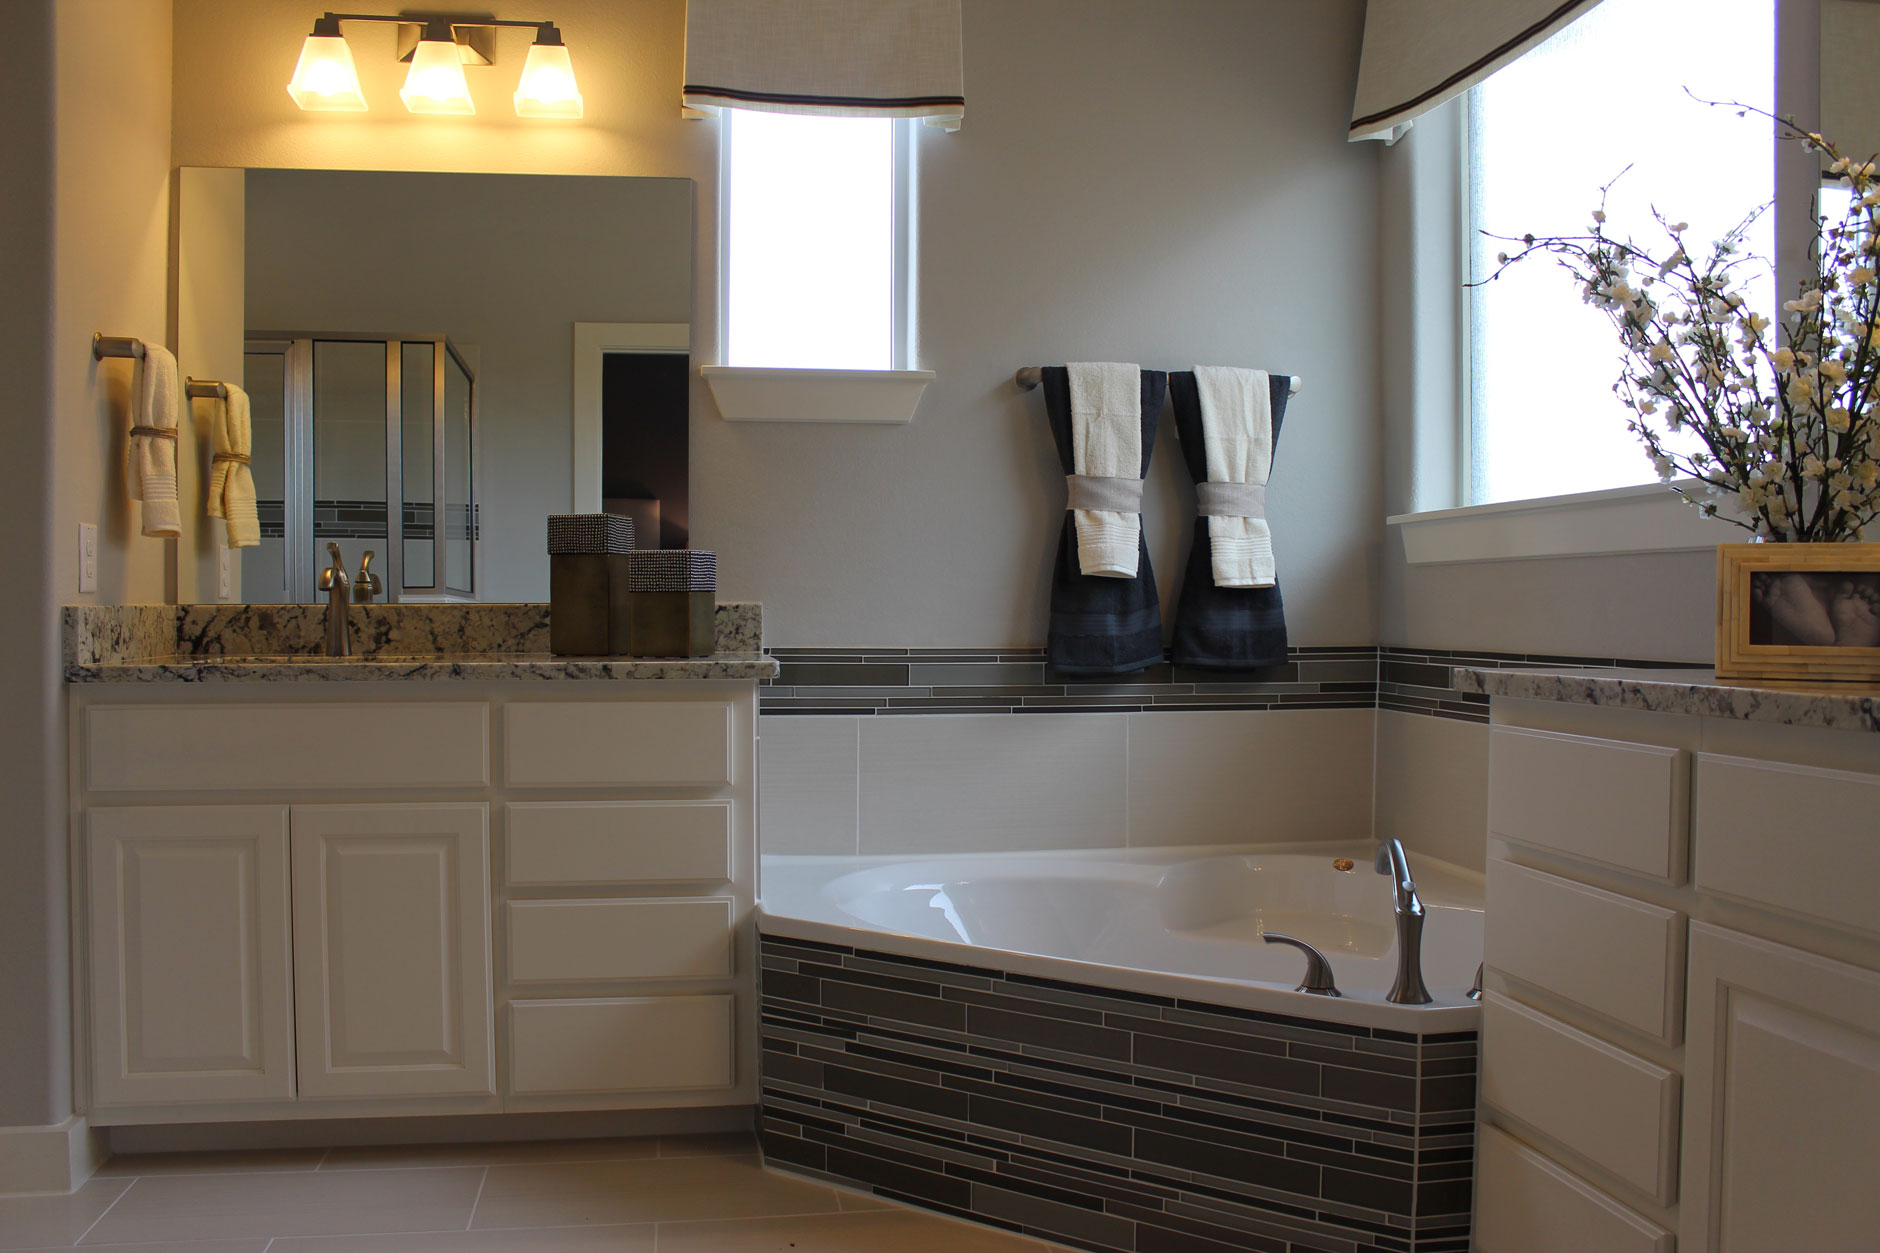 Bathroom cabinets with C101 - OE3, IE1, RP1 painted white